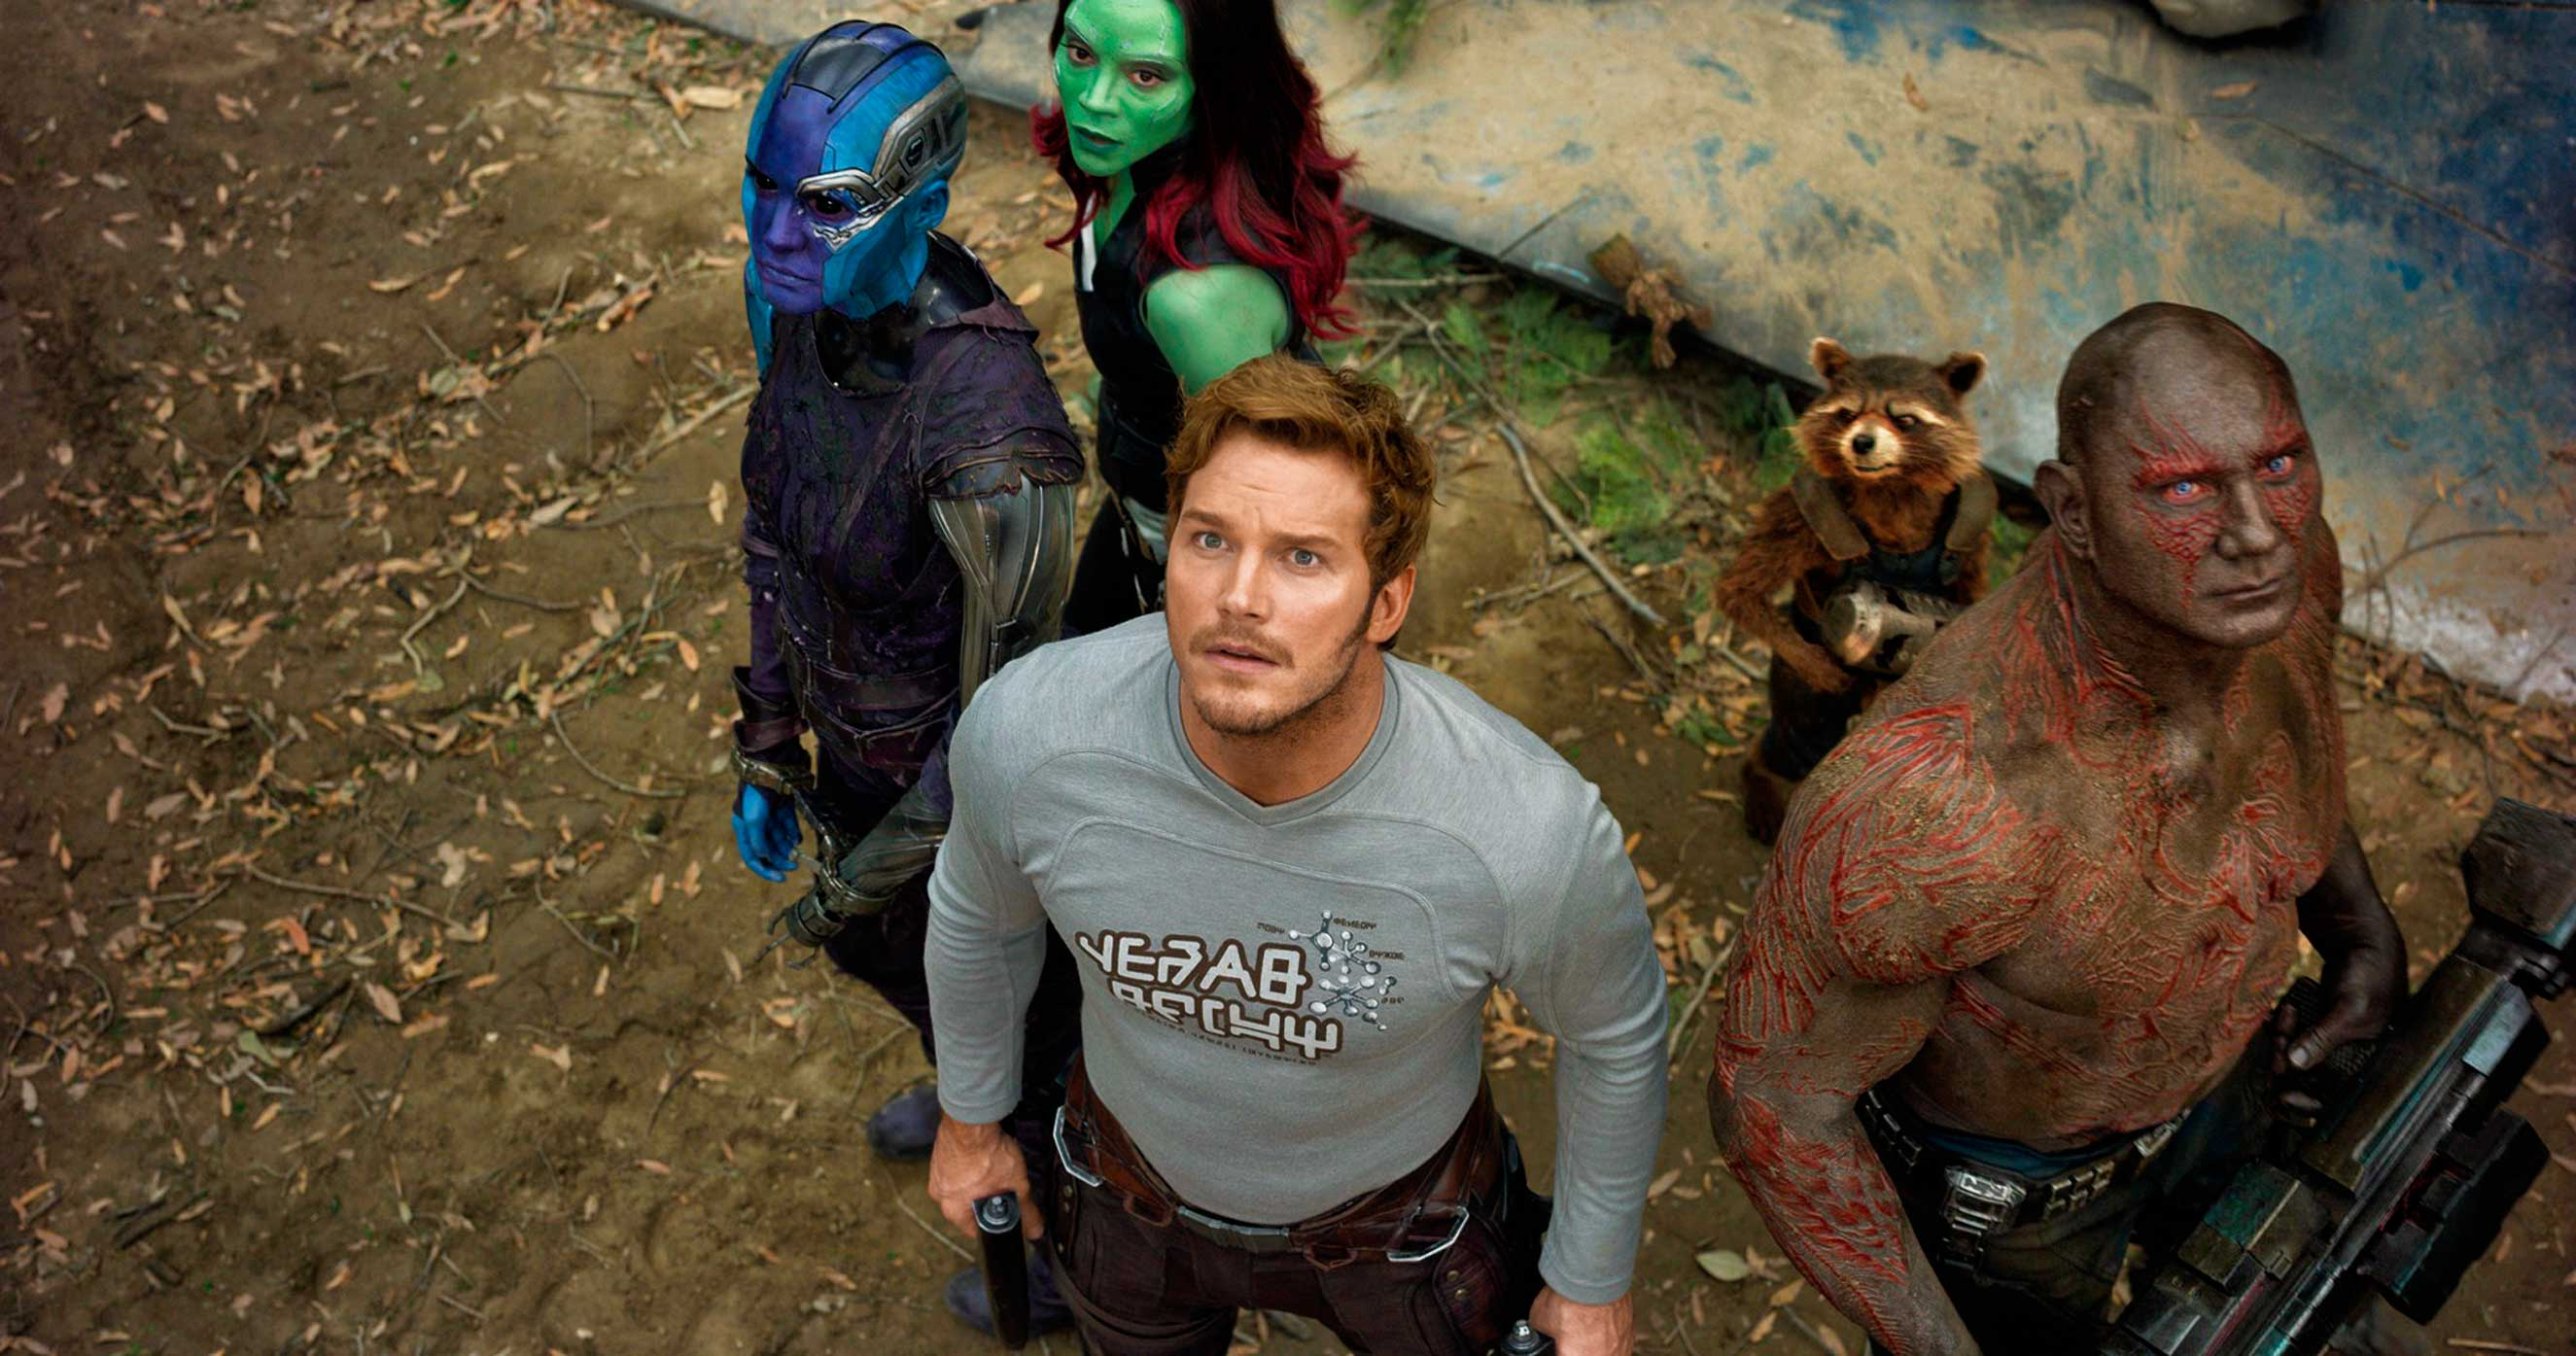 The Guardians gang, with a few new members, proves that more can actually be less.                                           L to R: Nebula (Karen Gillan), Gamora (Zoe Saldana), Star-Lord/Peter Quill (Chris Pratt), Groot (voiced by Vin Diesel), Rocket (voiced by Bradley Cooper) and Drax (Dave Bautista)